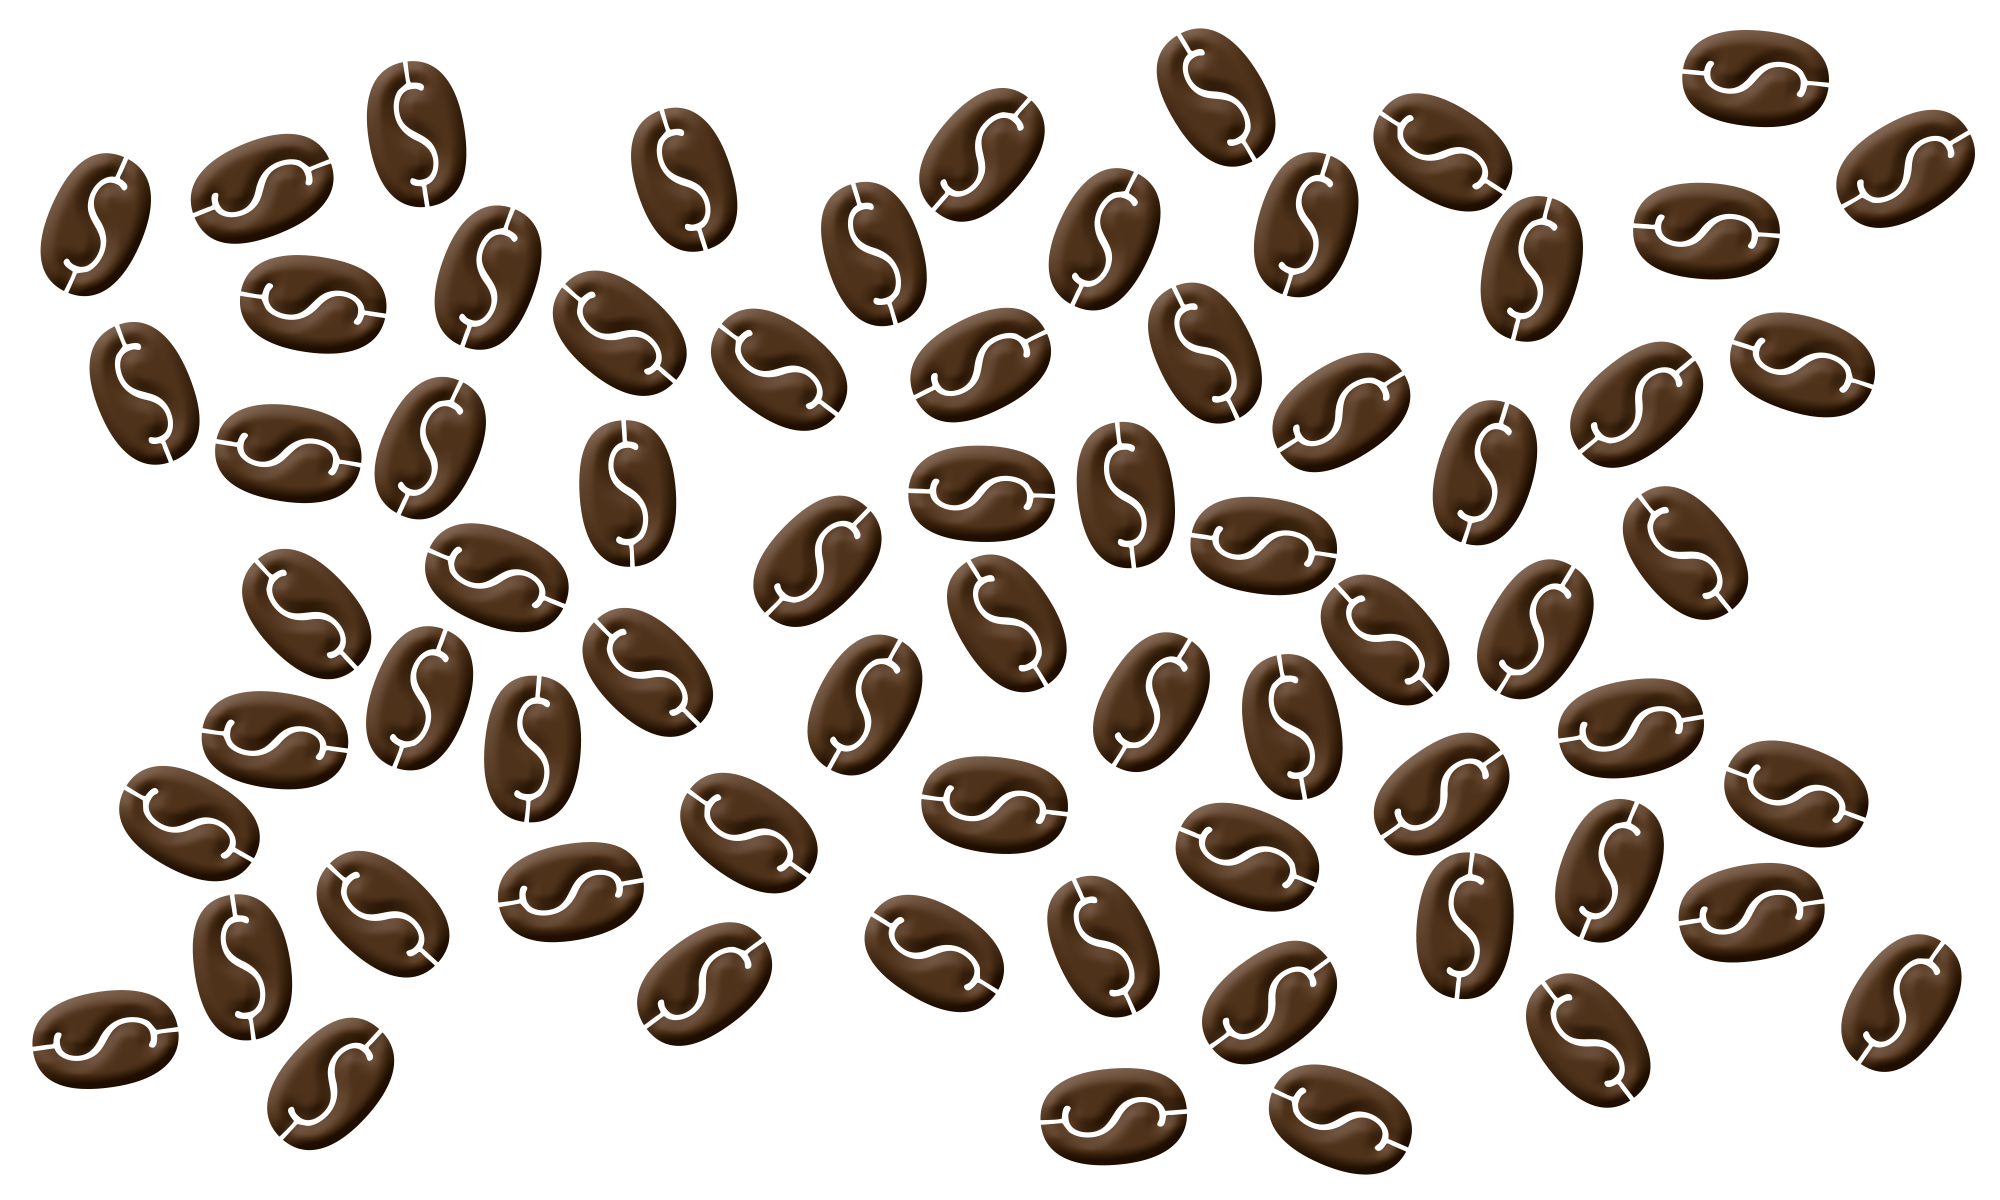 Coffee tree clipart graphic transparent stock Dollar Sign Coffee Beans | Clipart Panda - Free Clipart Images graphic transparent stock